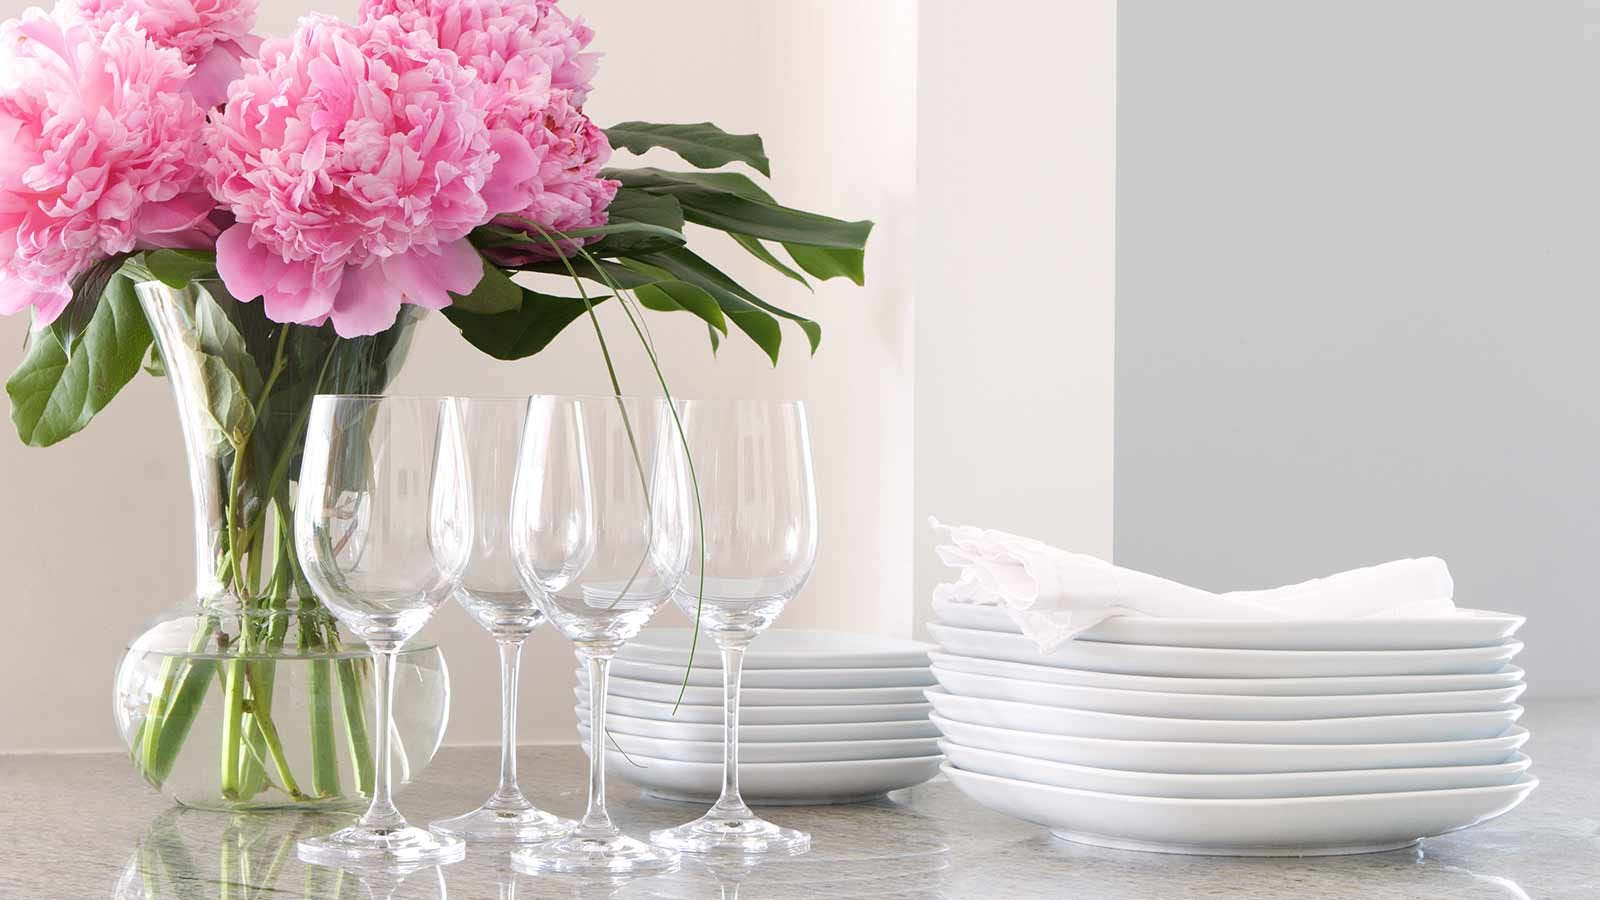 A stack of white plates, crystal ware, linens, and a vase filled with peonies, ready to be set out for dinner.